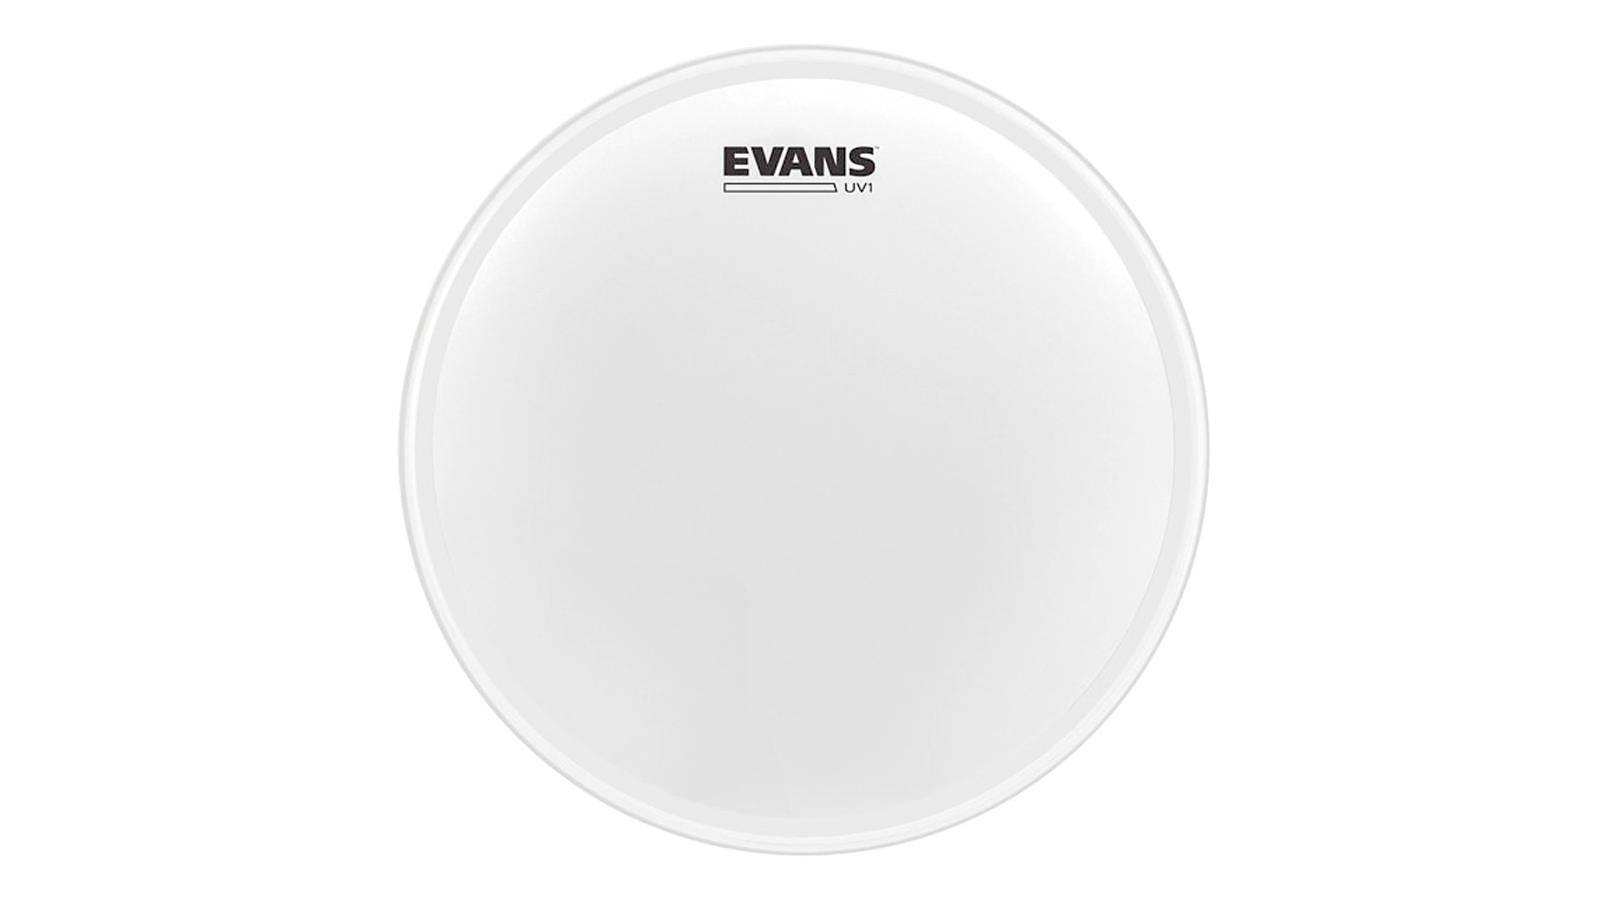 Evans B16UV1 UV1 Tomfell Coated 16""